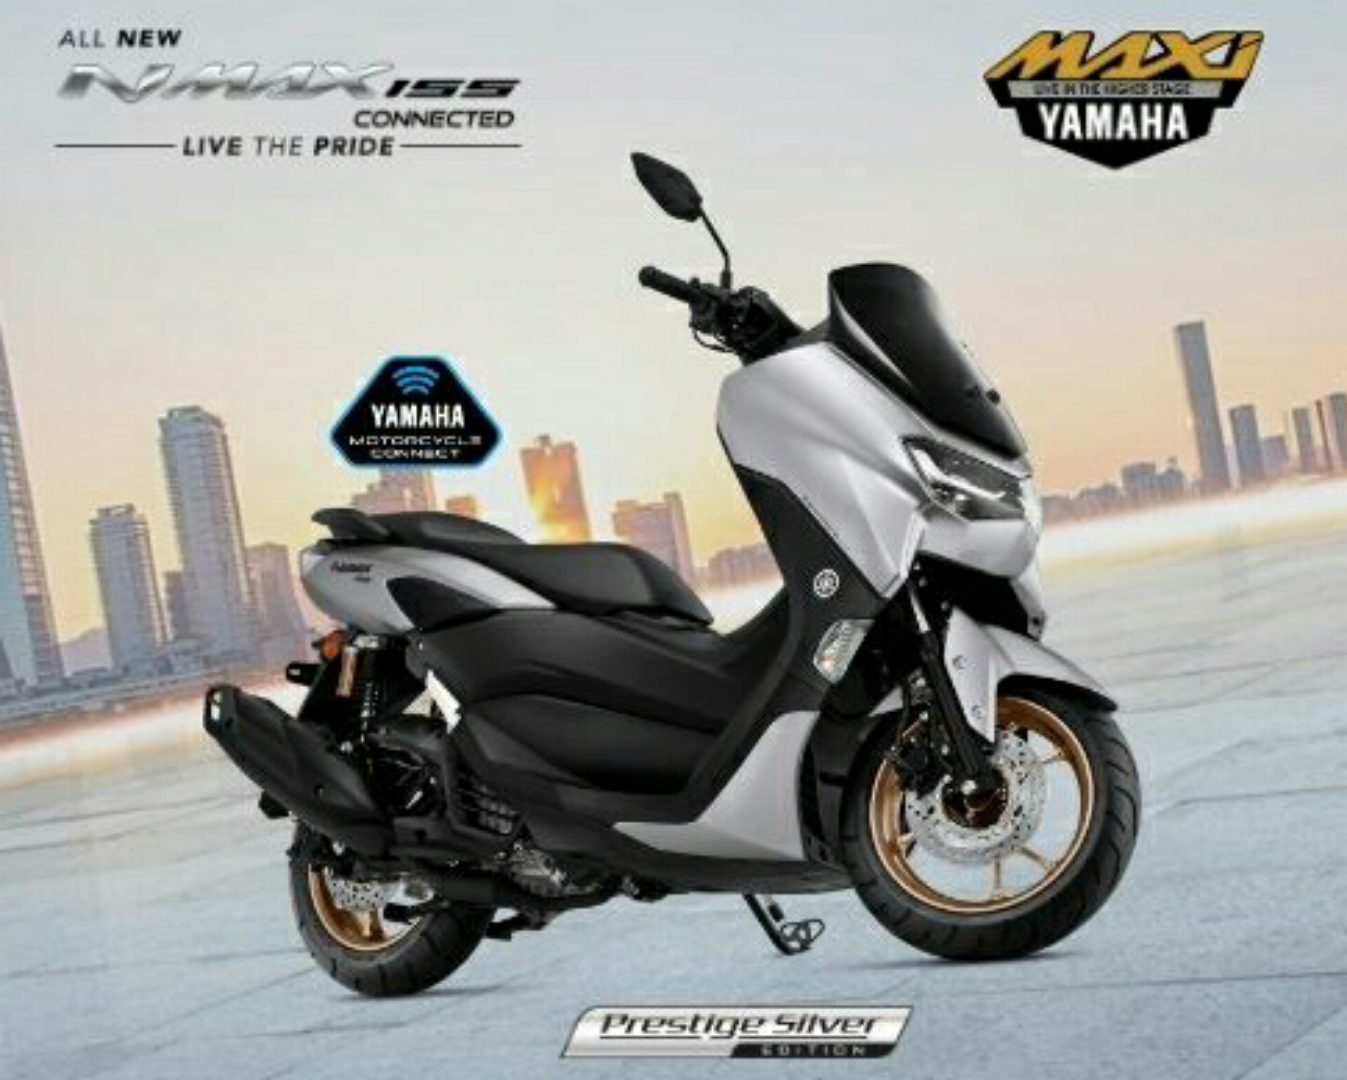 All New Nmax Connected Varian Baru Standard Upgrade